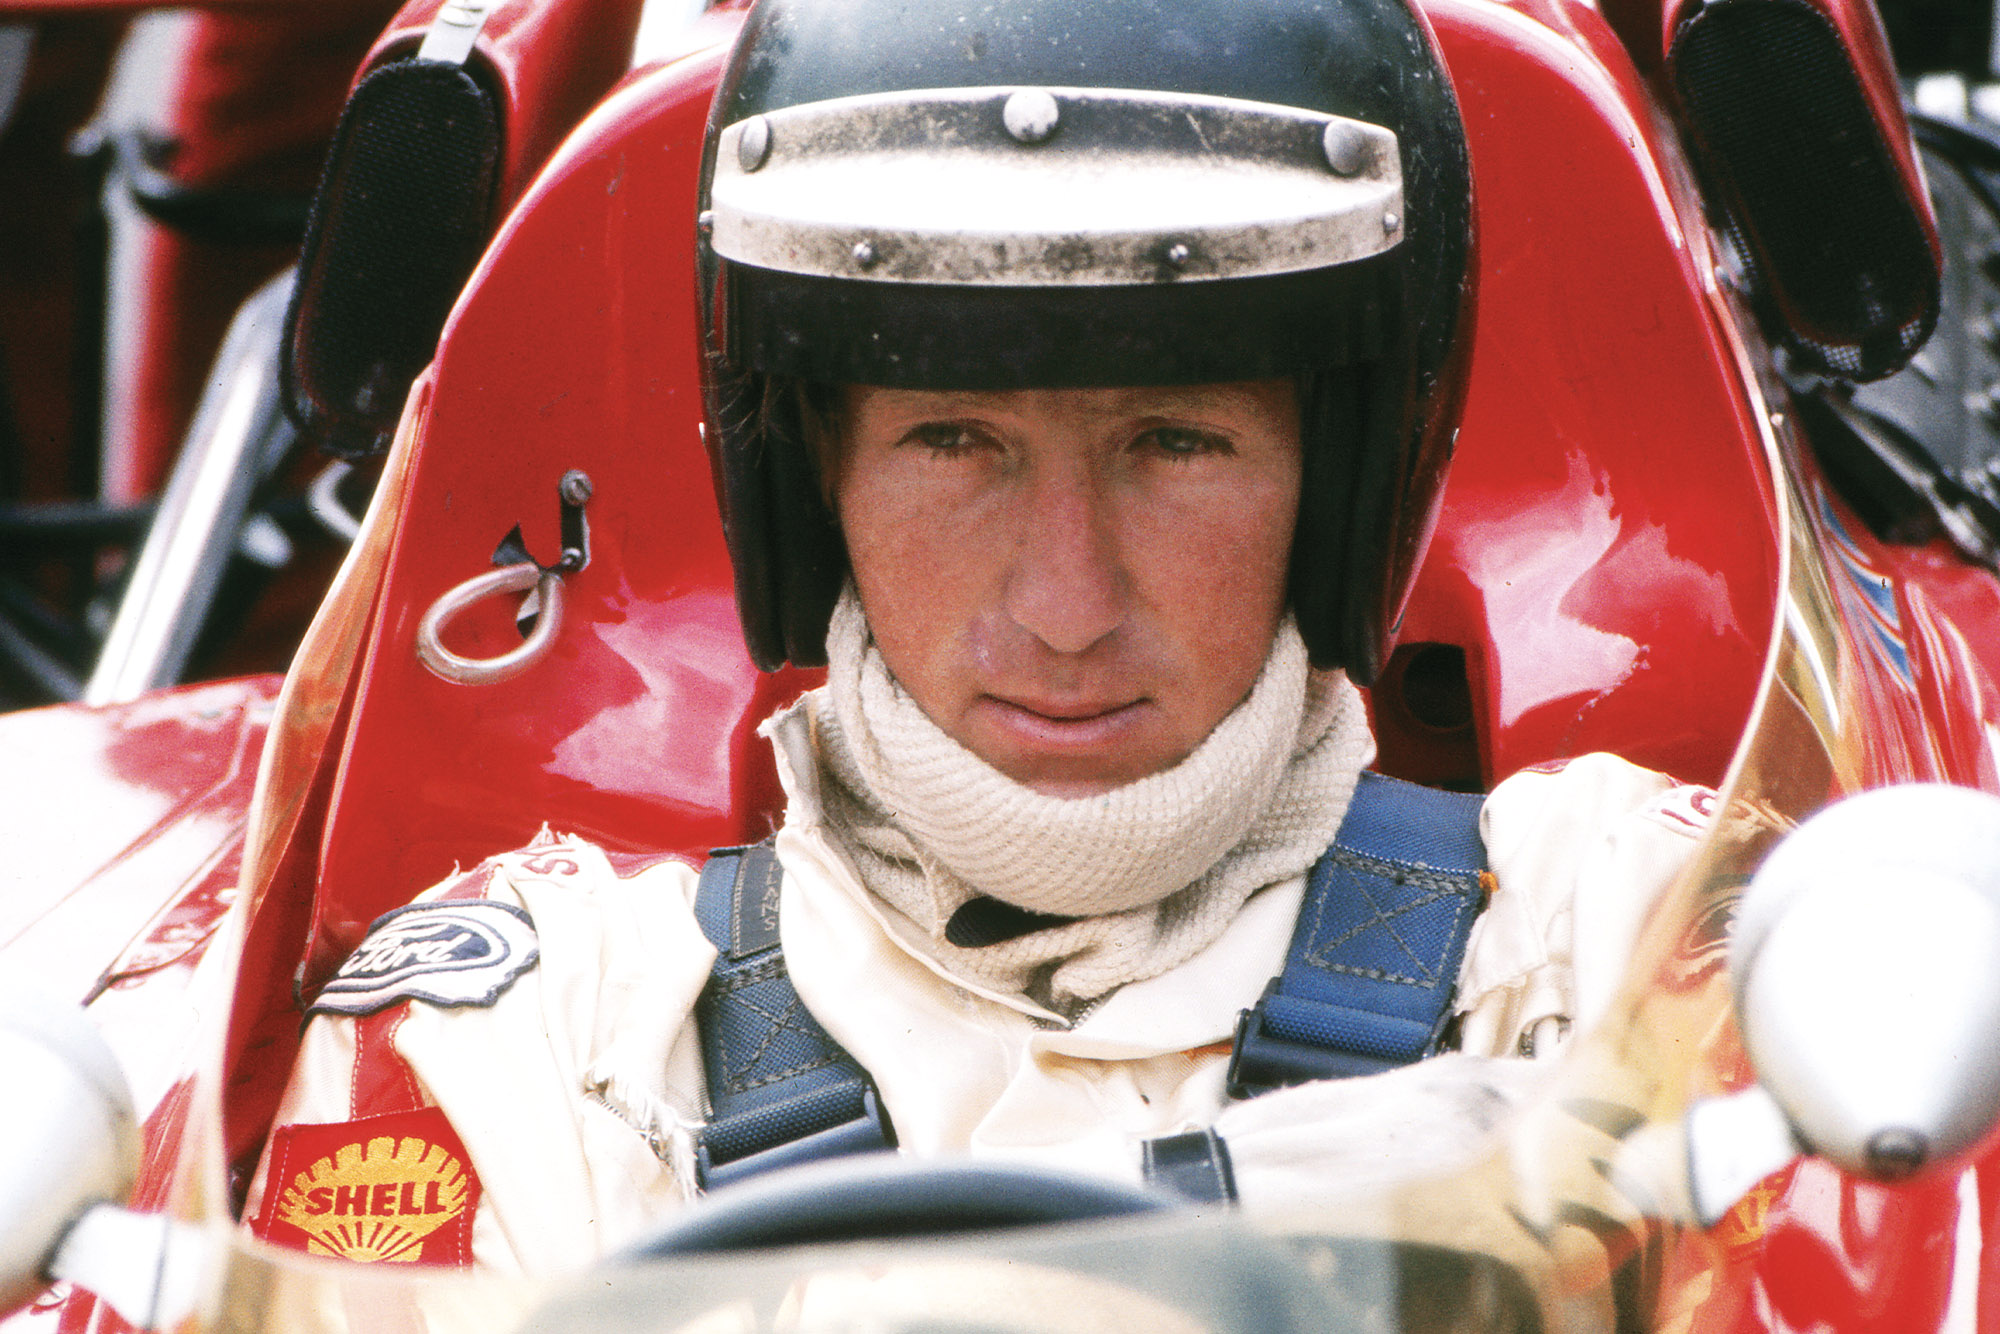 Jochen Rindt in the cockpit of his Lotus at the 1975 British Grand Prix